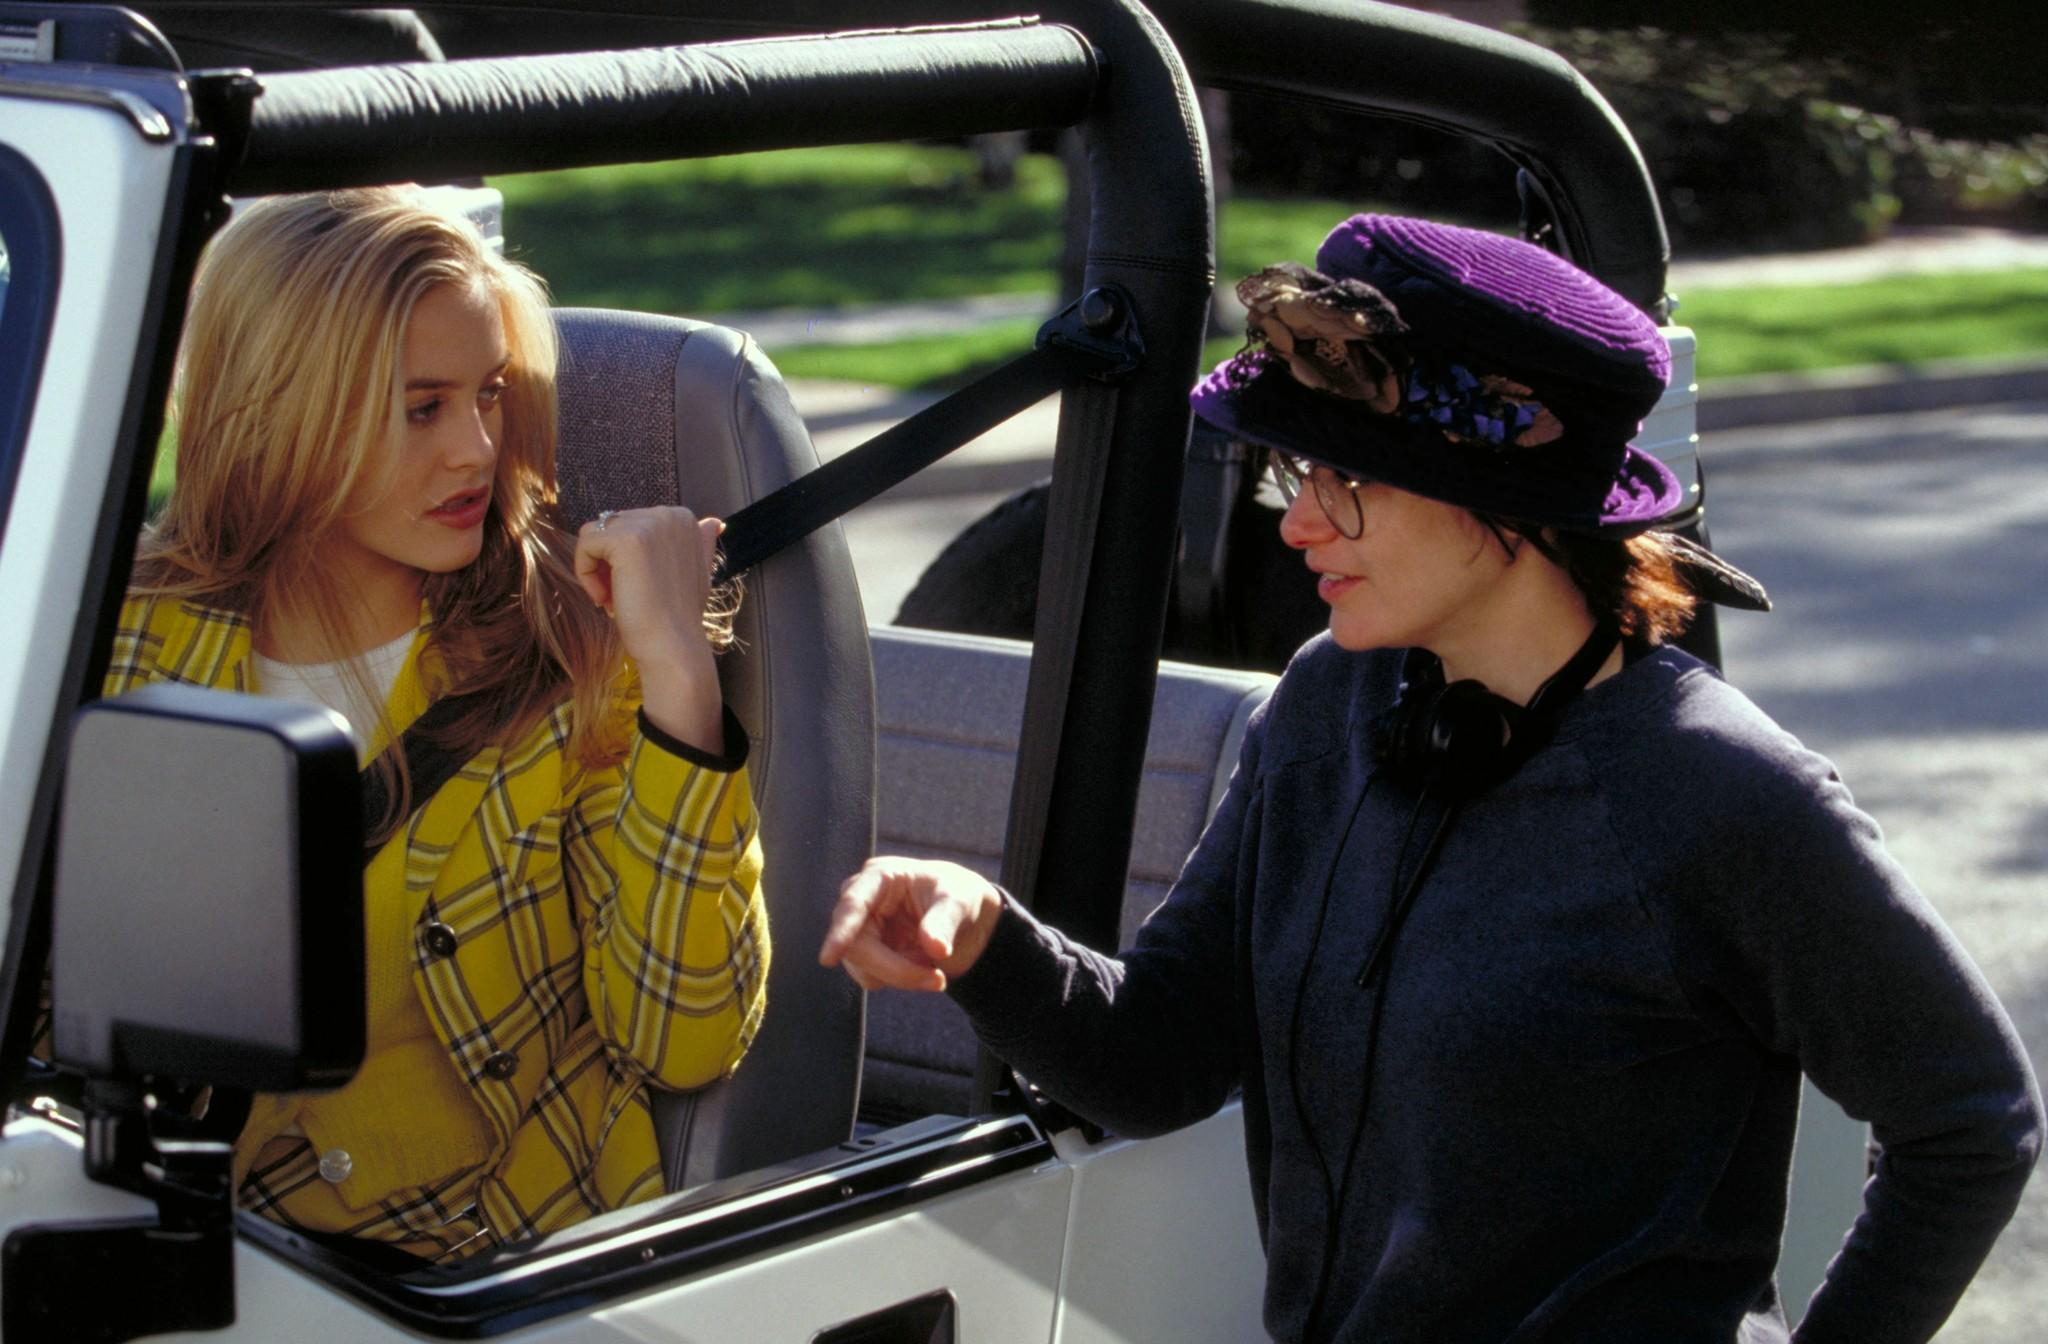 Clip from the movie Clueless